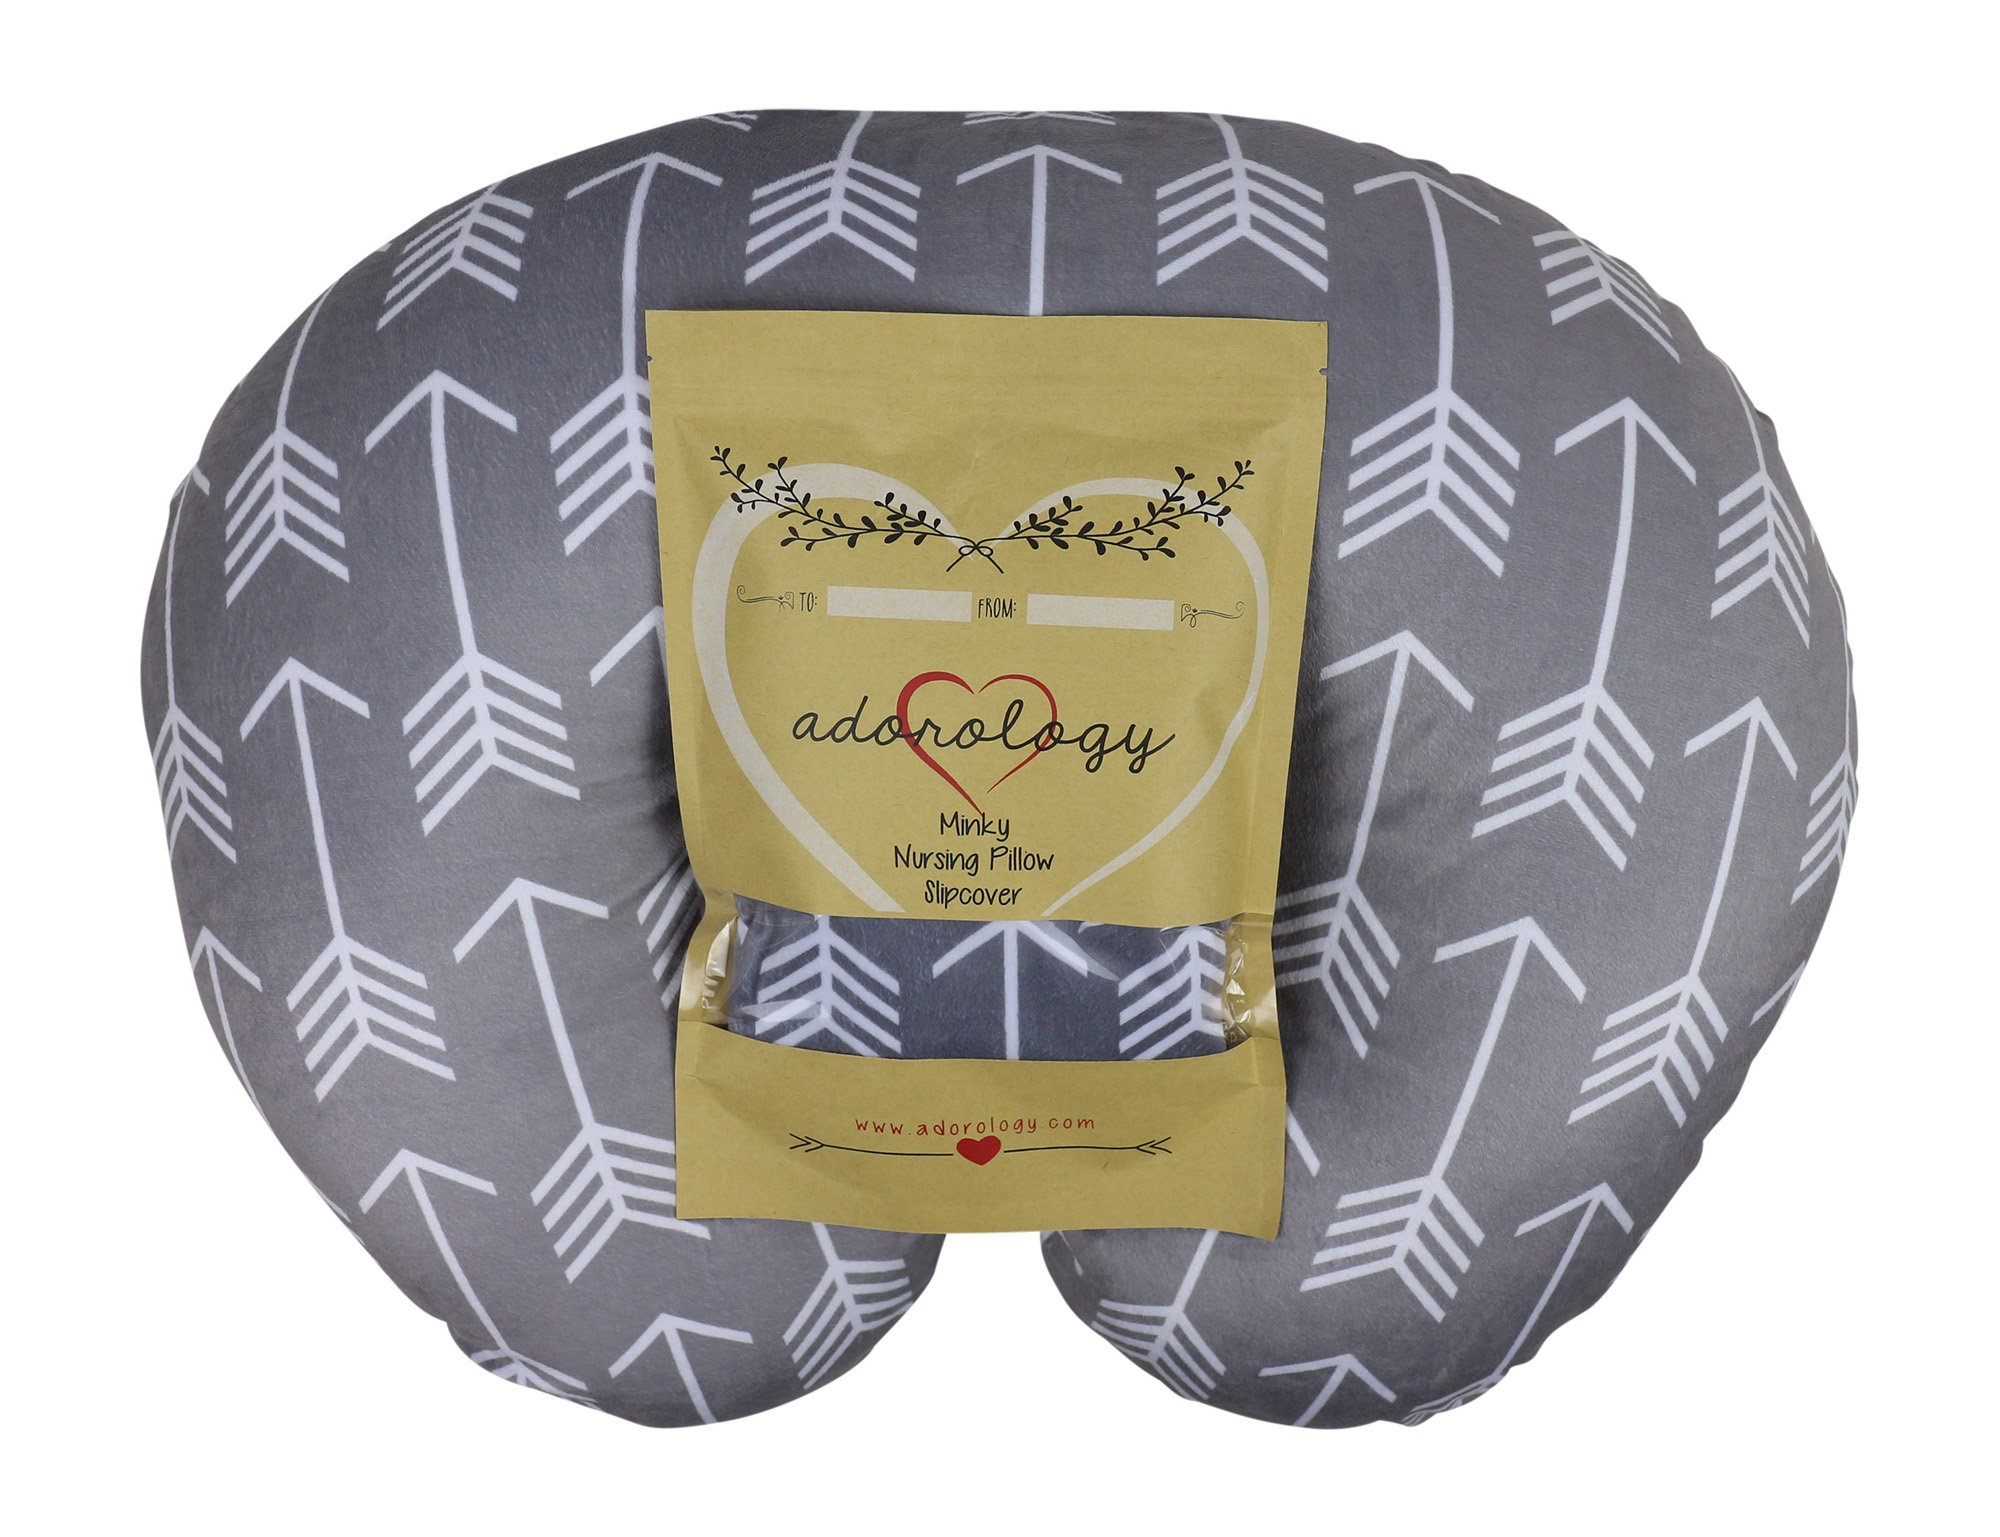 Minky Nursing Pillow Slipcover | Gray Arrow Design | Infant Breastfeeding Soft Pillow Cover | Great Baby Shower Gift for Any Mom to Be by Adorology by Adorology